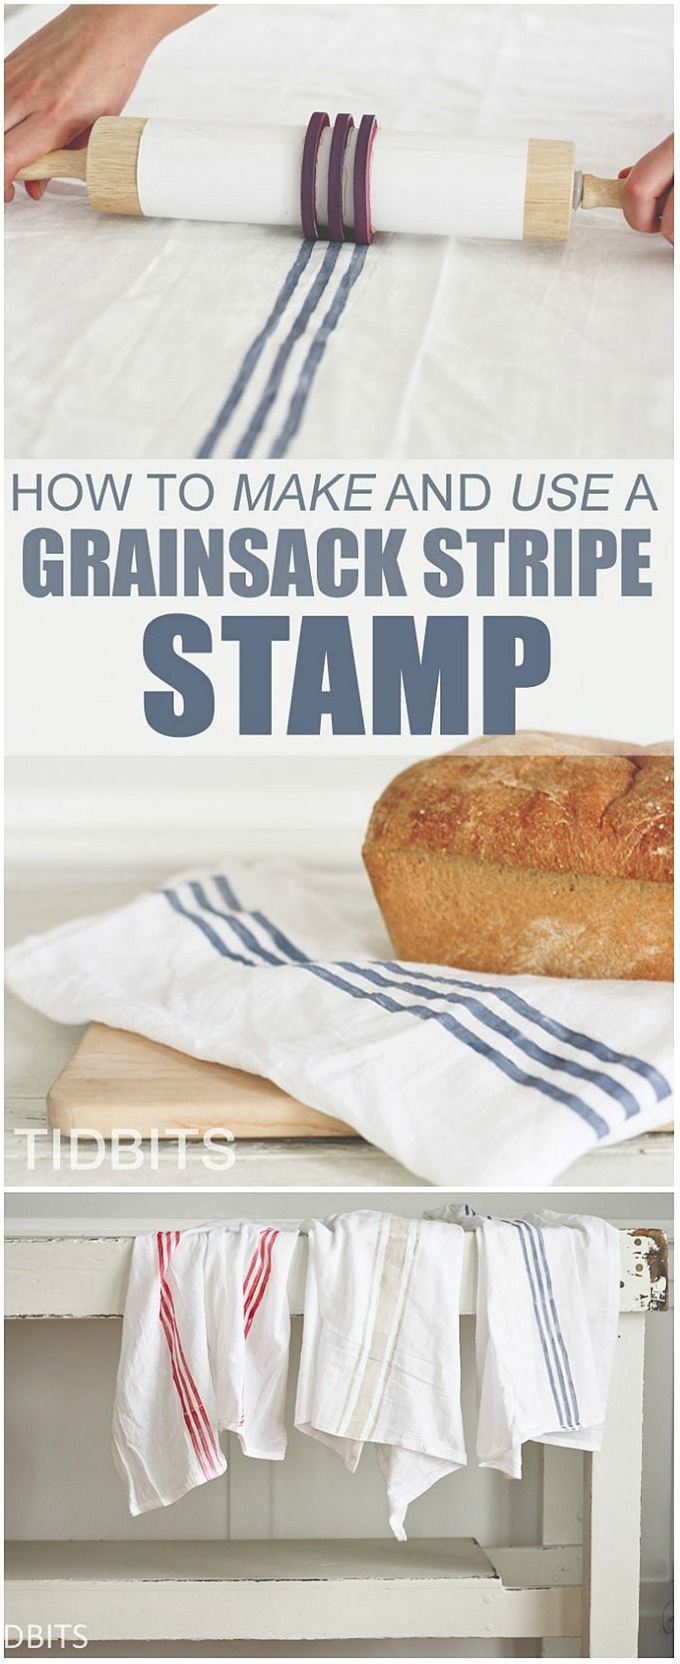 This tutorial makes the process of making authentic-looking grainsacks so easy!\n\n MATERIALS:\n\n  Rolling Pin\n You can buy a new one and designate it as your grainsack rolling pin, or use the one in your kitchen.  I will show you how you can make the stamp so it doesn't ruin your rolling pin at all, and you can use it for your pastry's when you are done stamping.\n 1 Piece of cardstock paper\n Tape\n Hot Glue Gun\n 1 Rubber Stamp Making Sheet